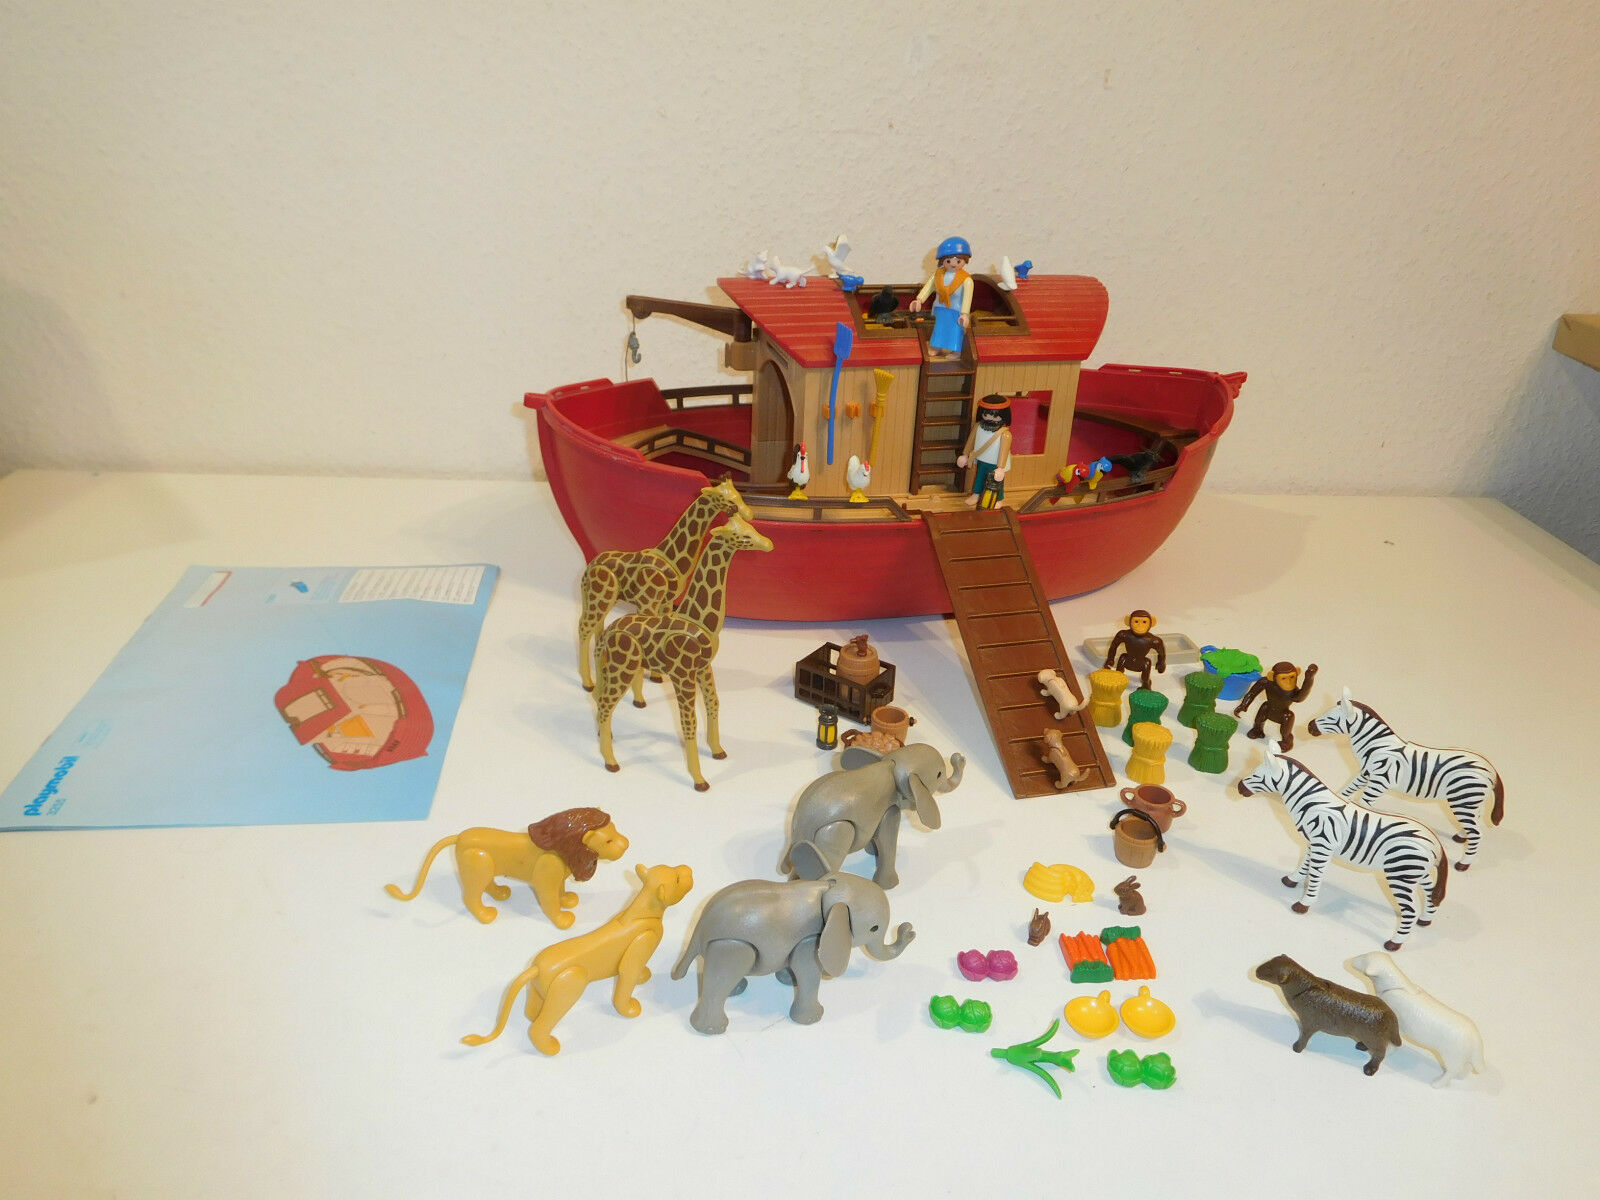 Playmobil 3255 noah boat with animals (3)